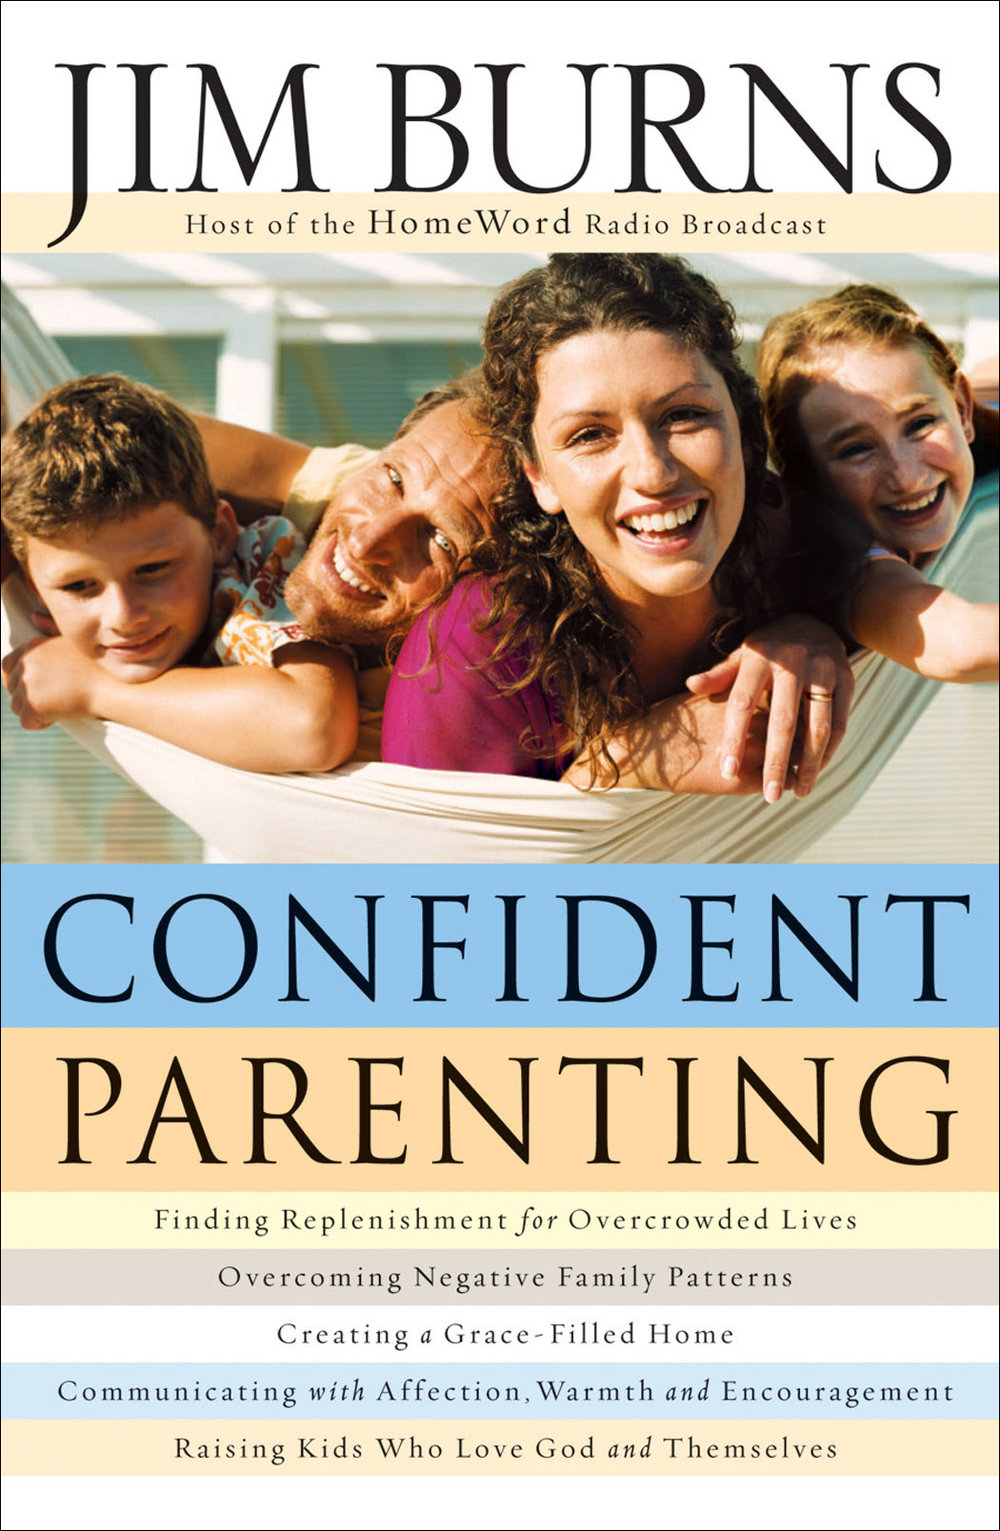 Jim Burns, president of HomeWord, lays a positive foundation for parenting with practical strategies and illustrations, teaching how to create a warm, grace-filled home.